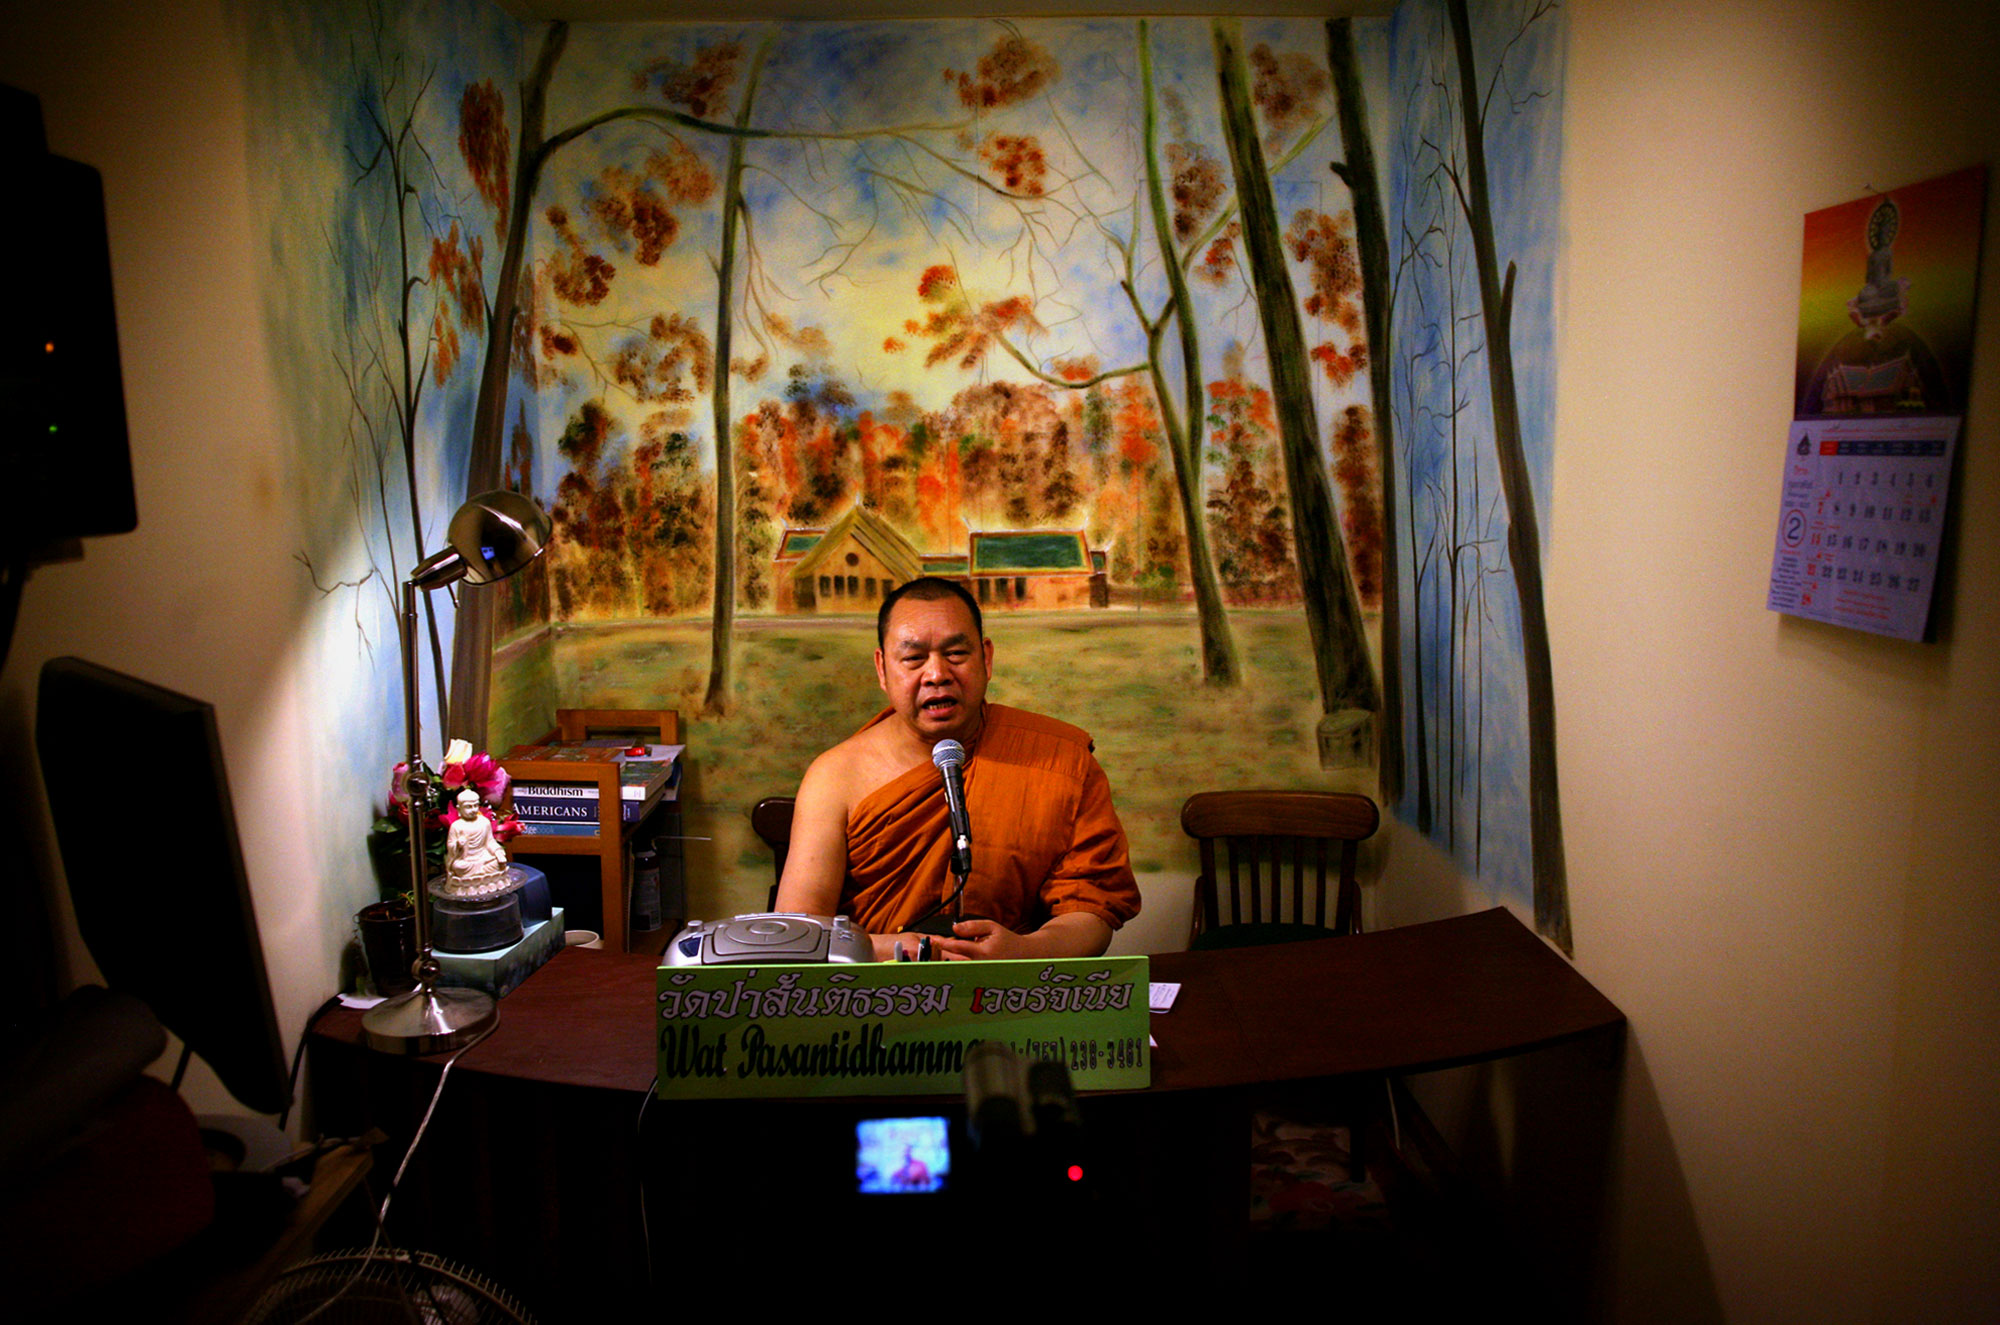 "Udom Budsriphoom steps behind the desk and takes his seat in front of a bucolic woodland scene. He's wrapped in saffron orange, save his right shoulder, which is bare.He peers over one of the monitors and takes a breath. A red light indicates that the DV recorder is on. The sound-proof room sucks up his words as they spill over the silver microphone.Welcome to Dhamma Talk, a nightly installment of the teachings of Buddha at Wat Pasantidhamma in Carrollton, Va. Each night for about an hour the head monk records teachings of the Buddha to be posted on the temple's Web site. ""It's a way for us to tell the teachings of the Buddha."" says Budsriphoom, the head monk and a native of Thailand. ""It's also a chance for us to give spiritual advice to people.""""Sometimes you feel lonely,"" Budsriphoom says. ""Sometimes we feel shy – you don't feel comfortable when you talk alone.""You try to imagine many people listening to you around the world."""